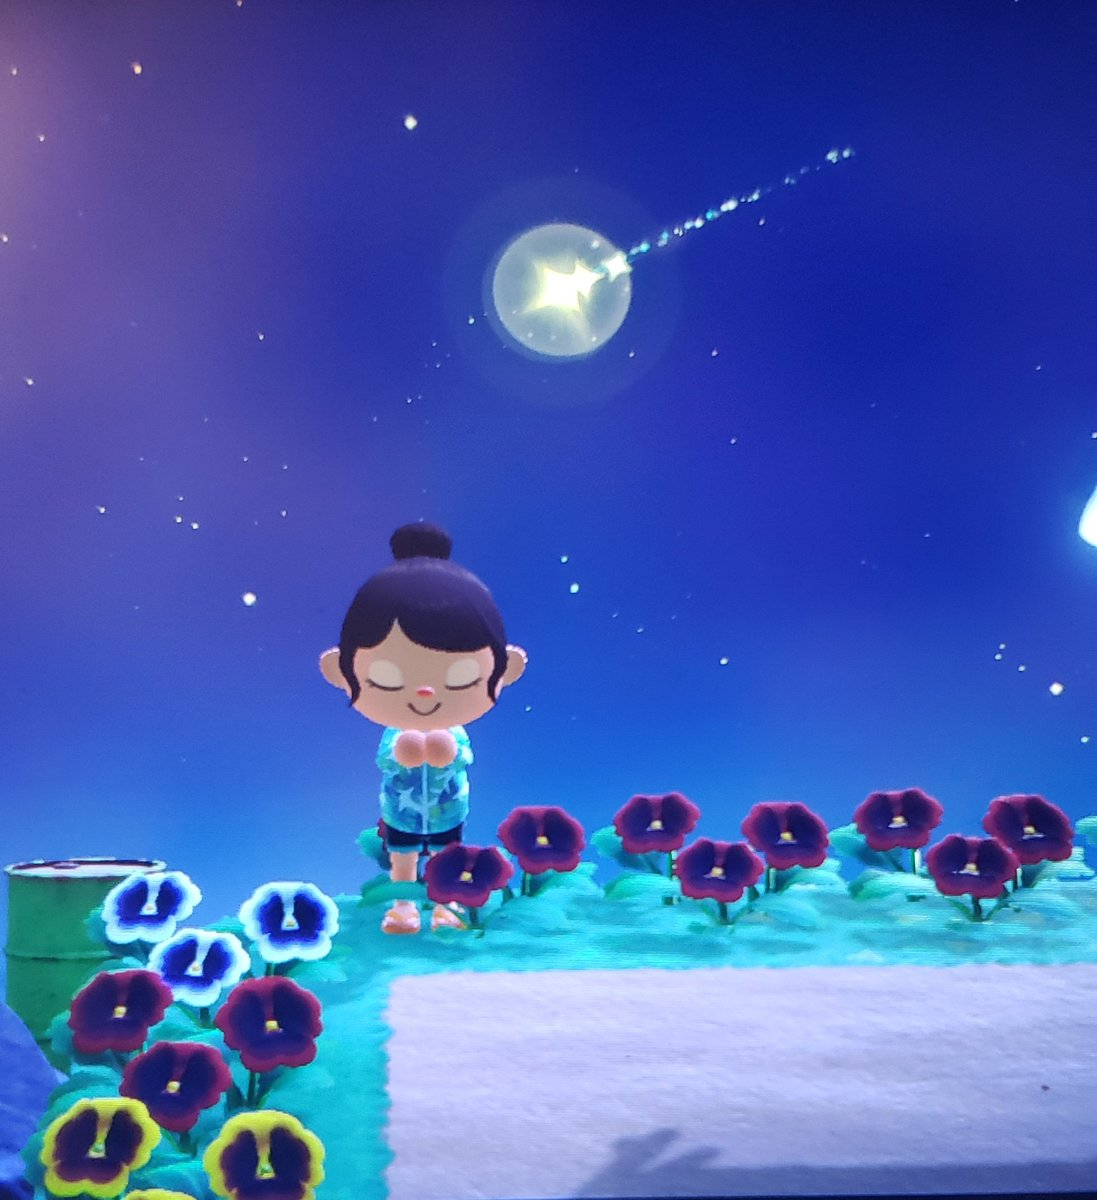 When you wish upon a star 🌟 #acnh #animalcrossingnewhorizonsgame